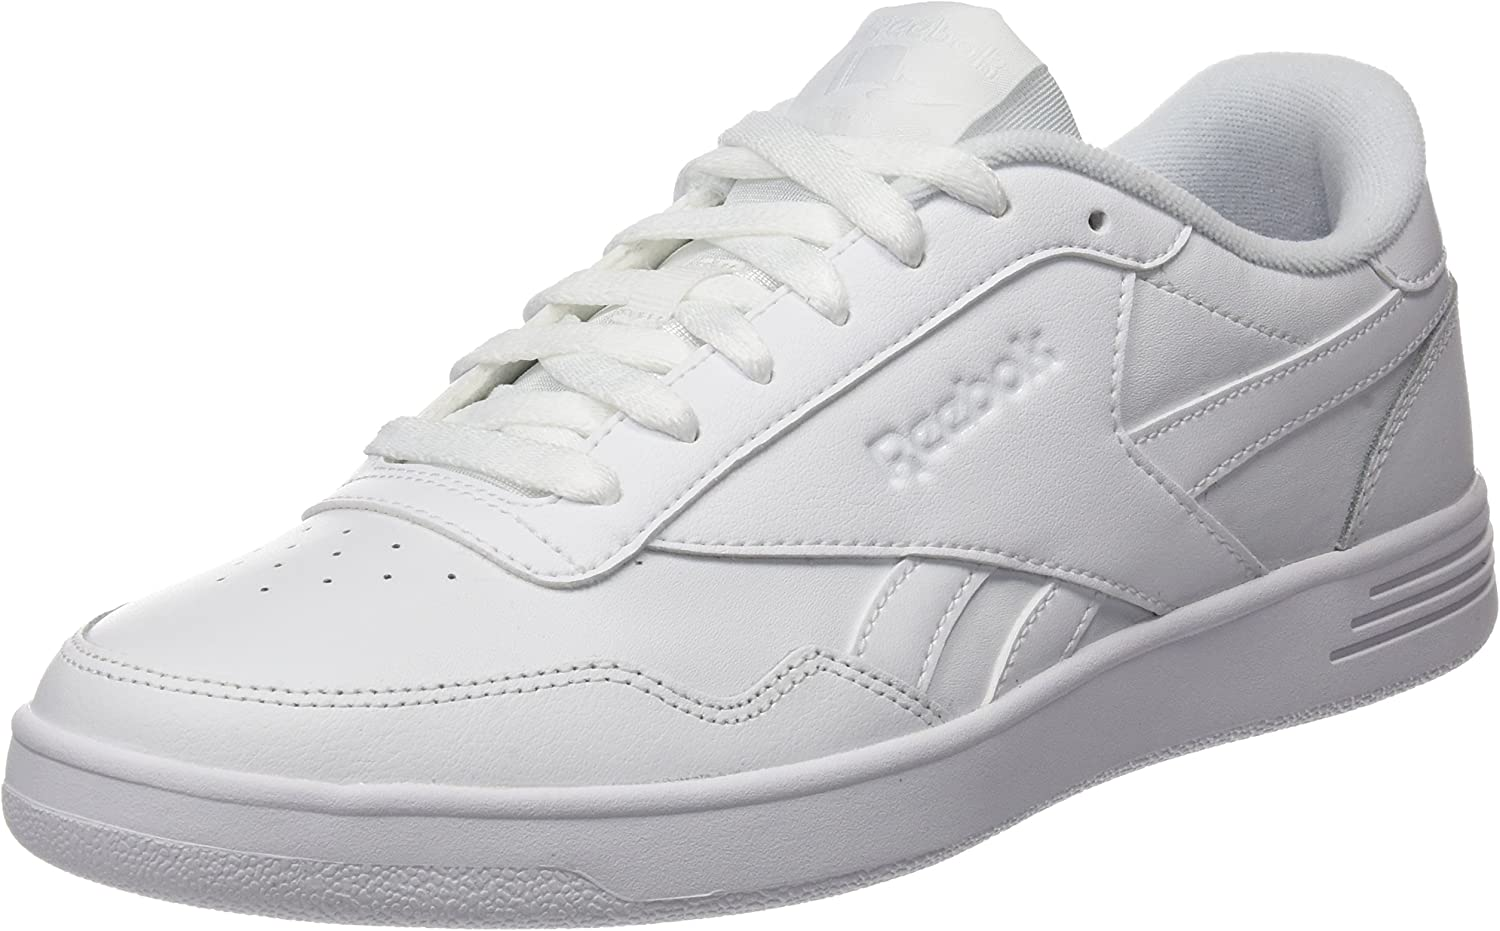 Reebok Herren Royal Techque T Tennisschuhe